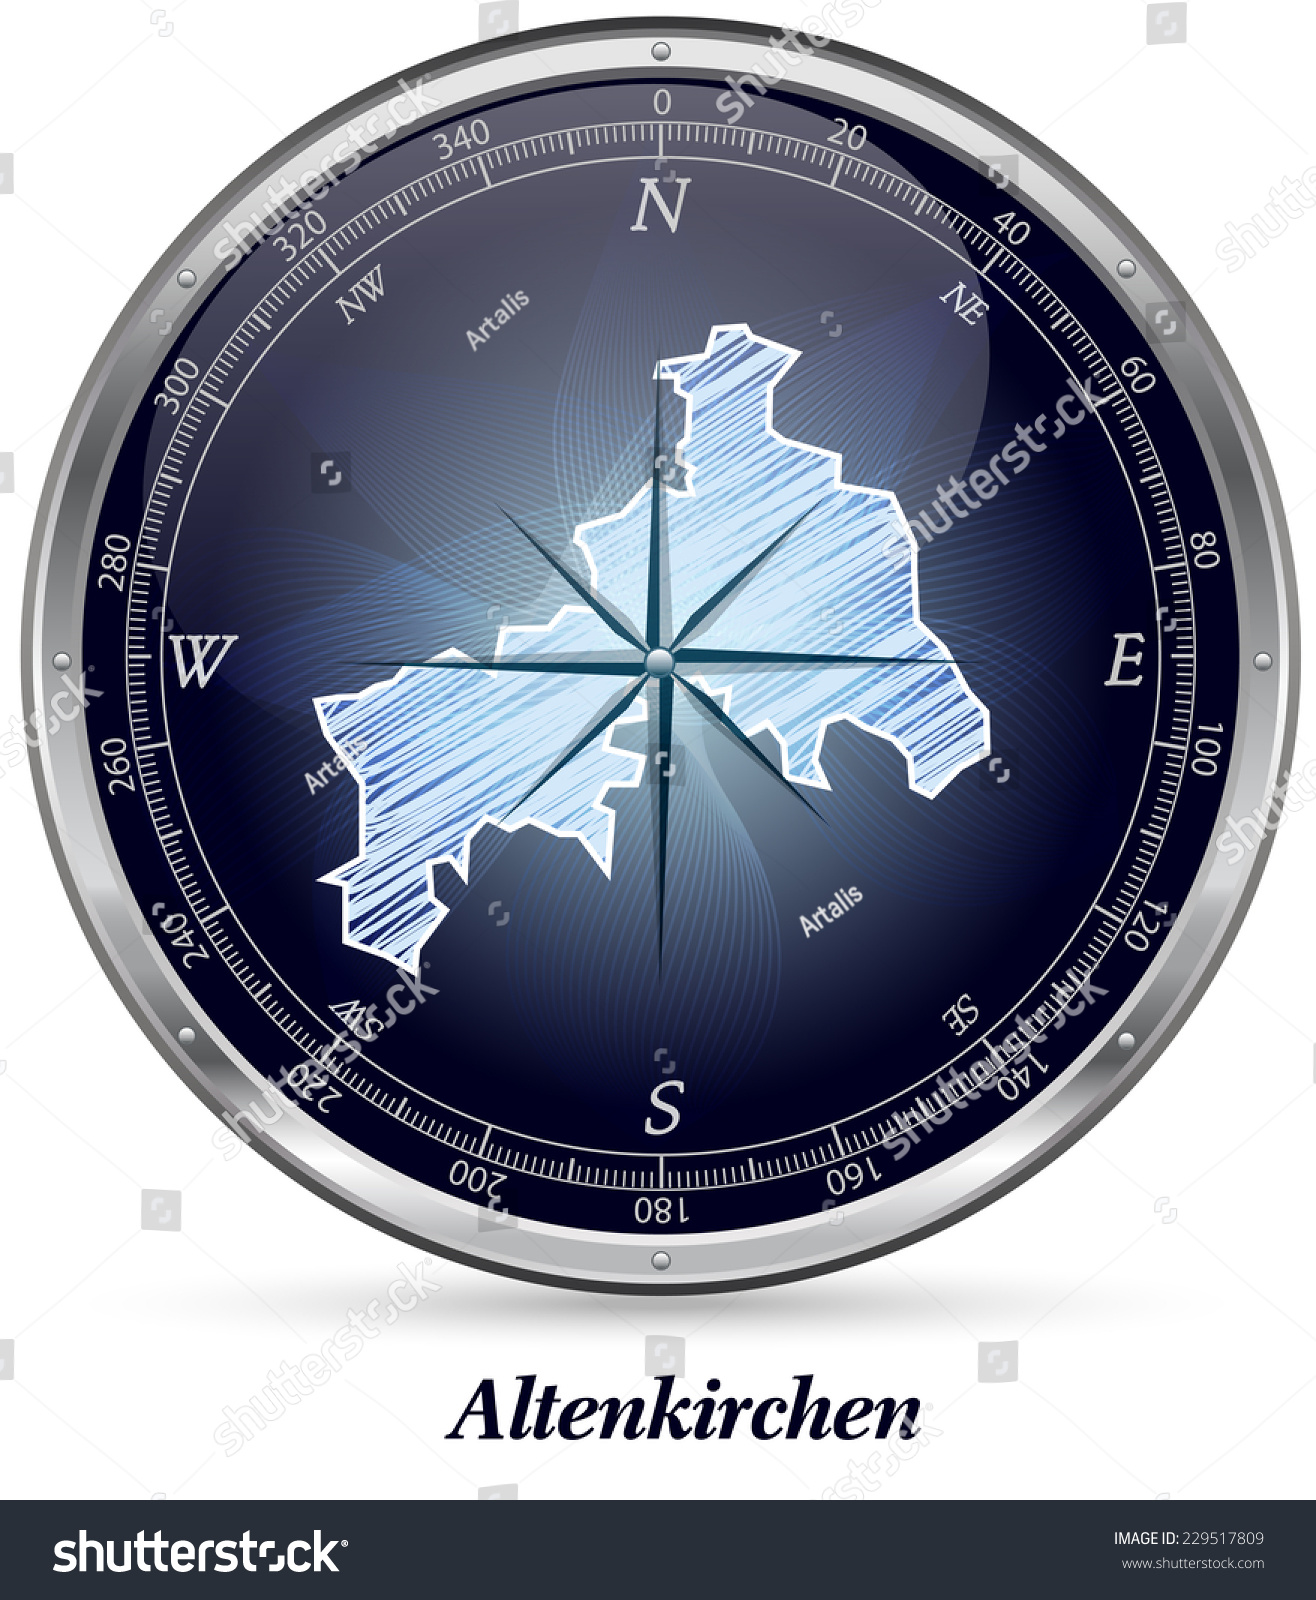 Map of Altenkirchen with borders in chrome